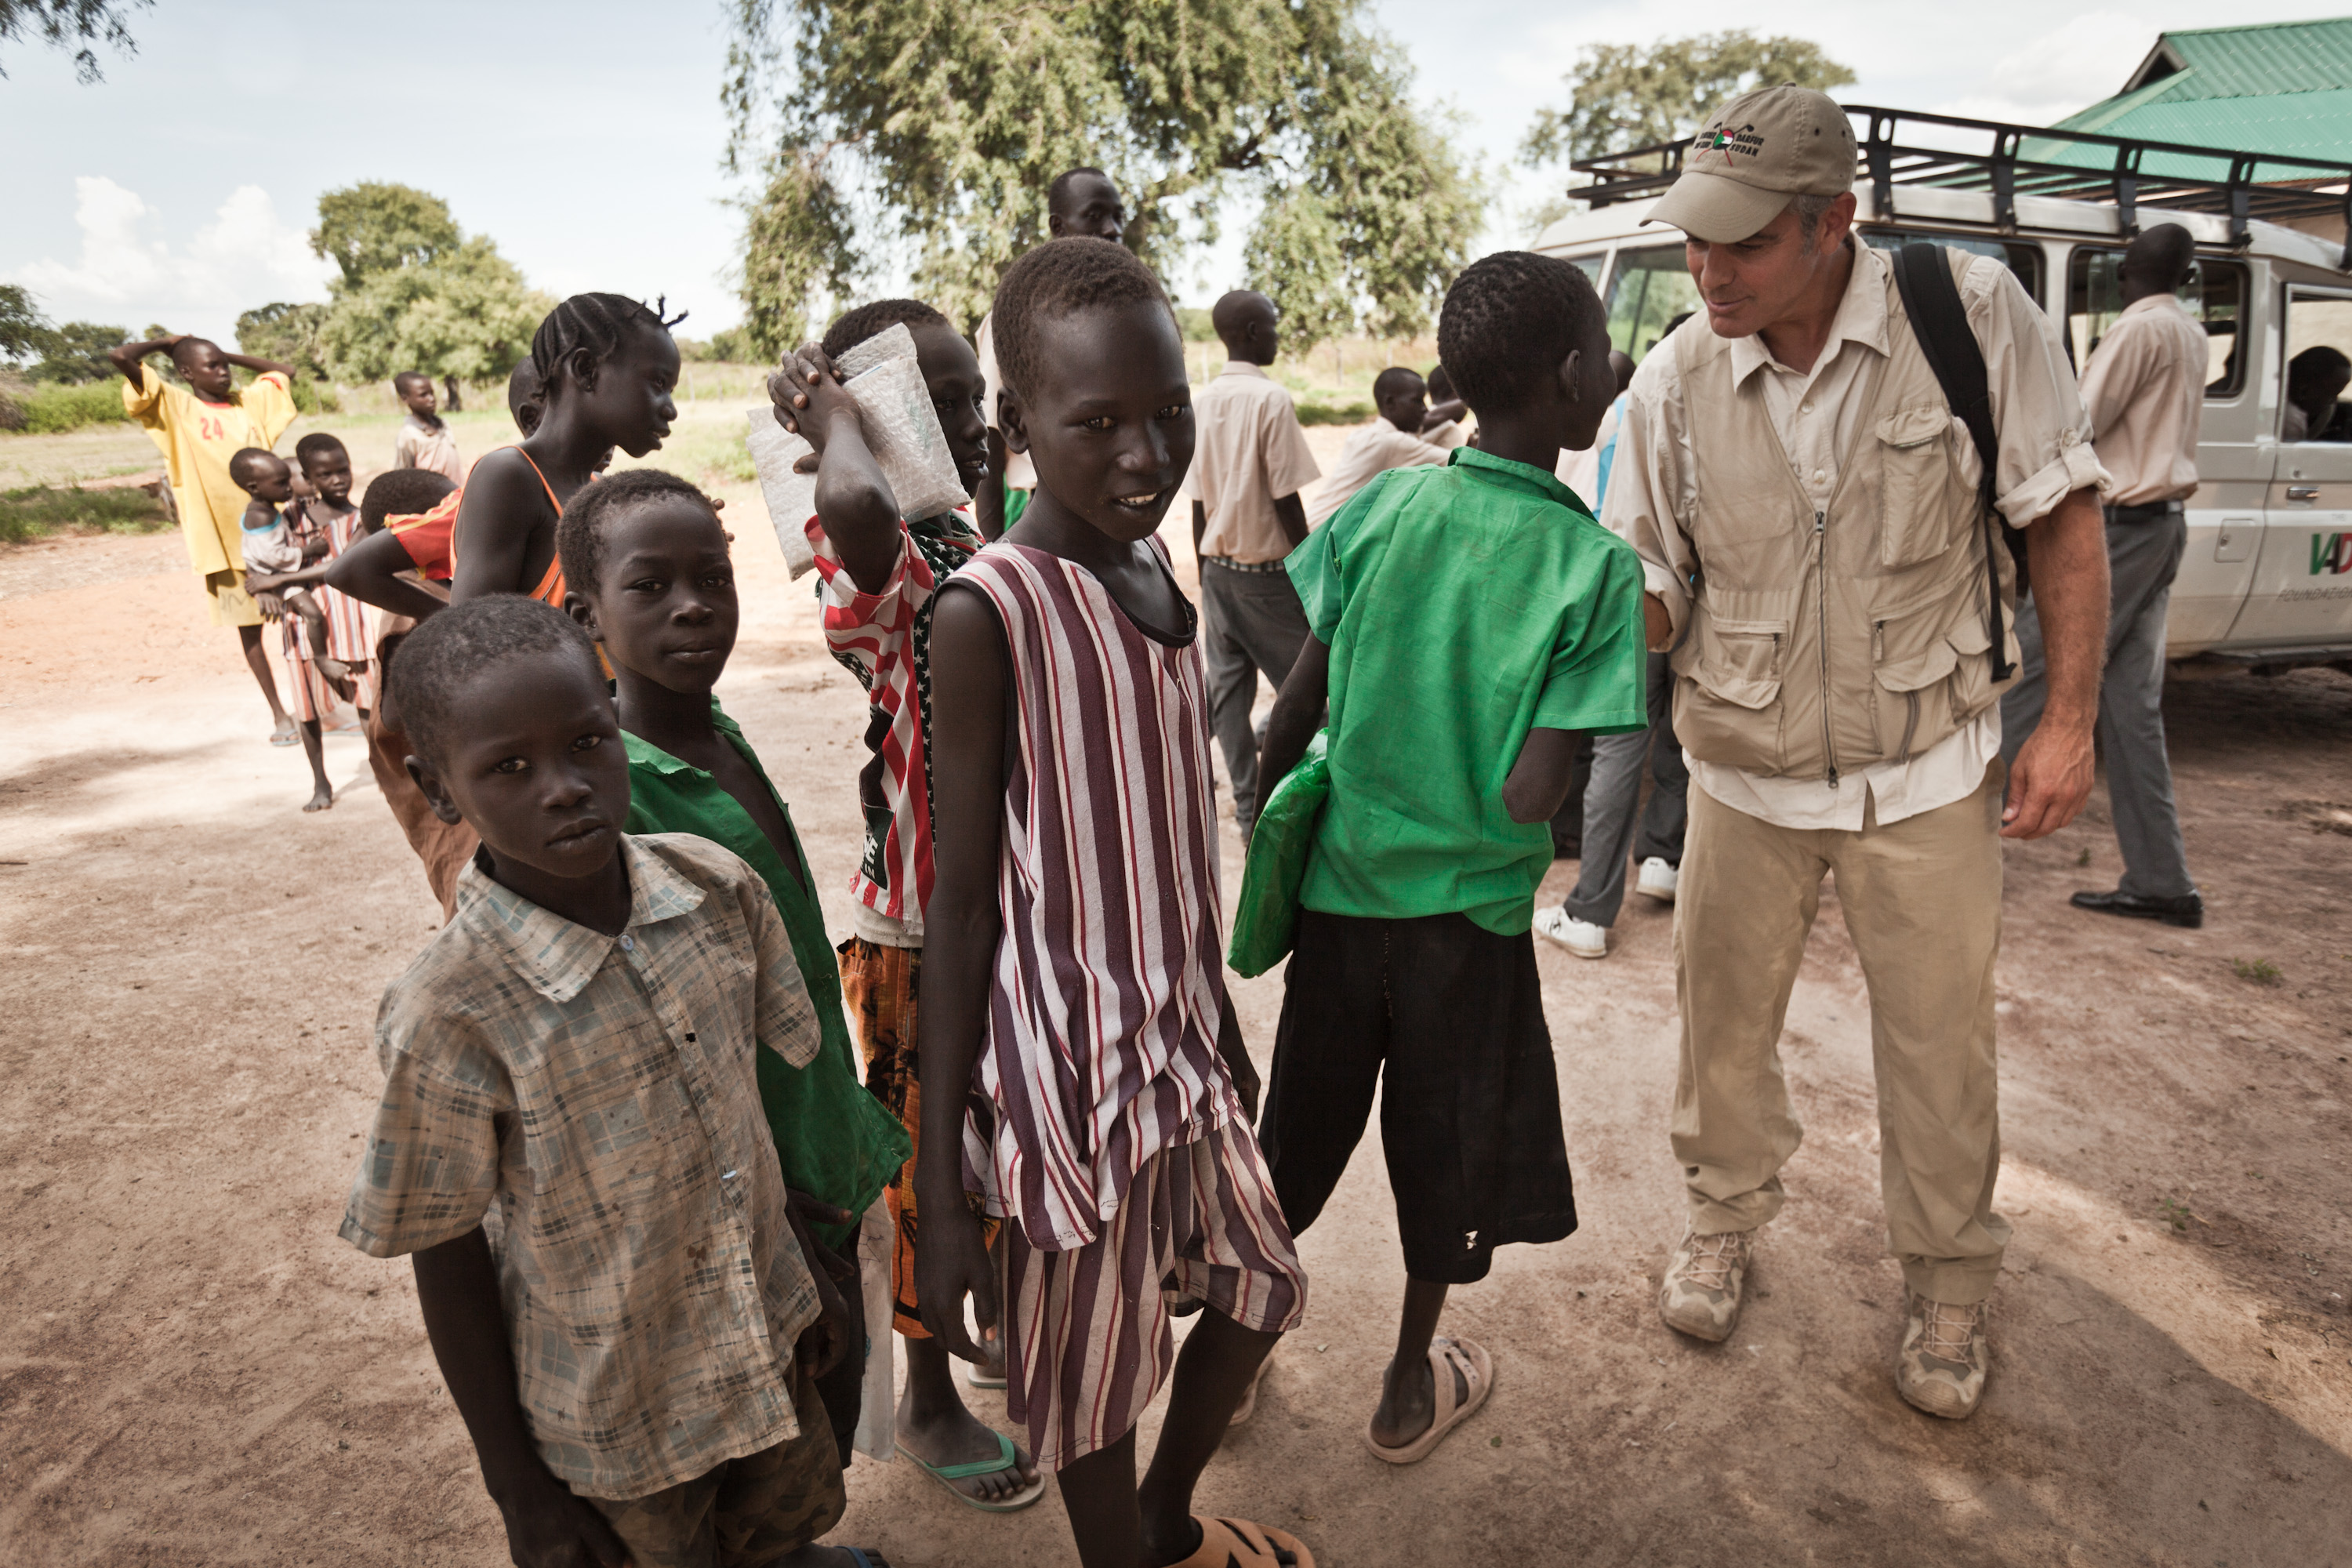 USA Today Op-ed: George Clooney: Sudan could become a second Syria